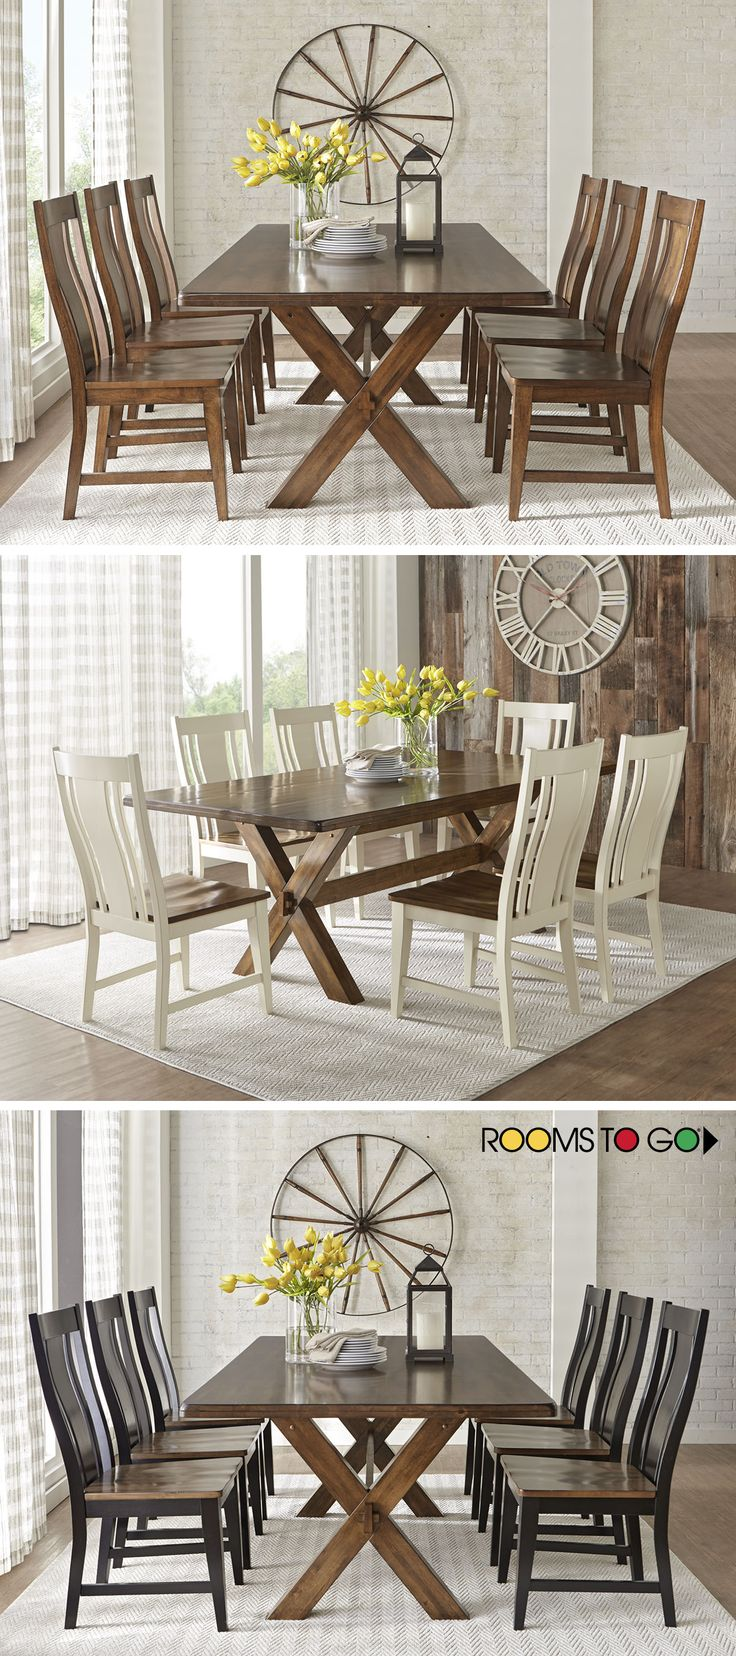 Brynwood white 5 pc round dining set dining room sets colors - Twin Lakes Brown 5 Pc 72 In Rectangle Dining Room Find Affordable Dining Room Sets For Your Home That Will Complement The Rest Of Your Furniture